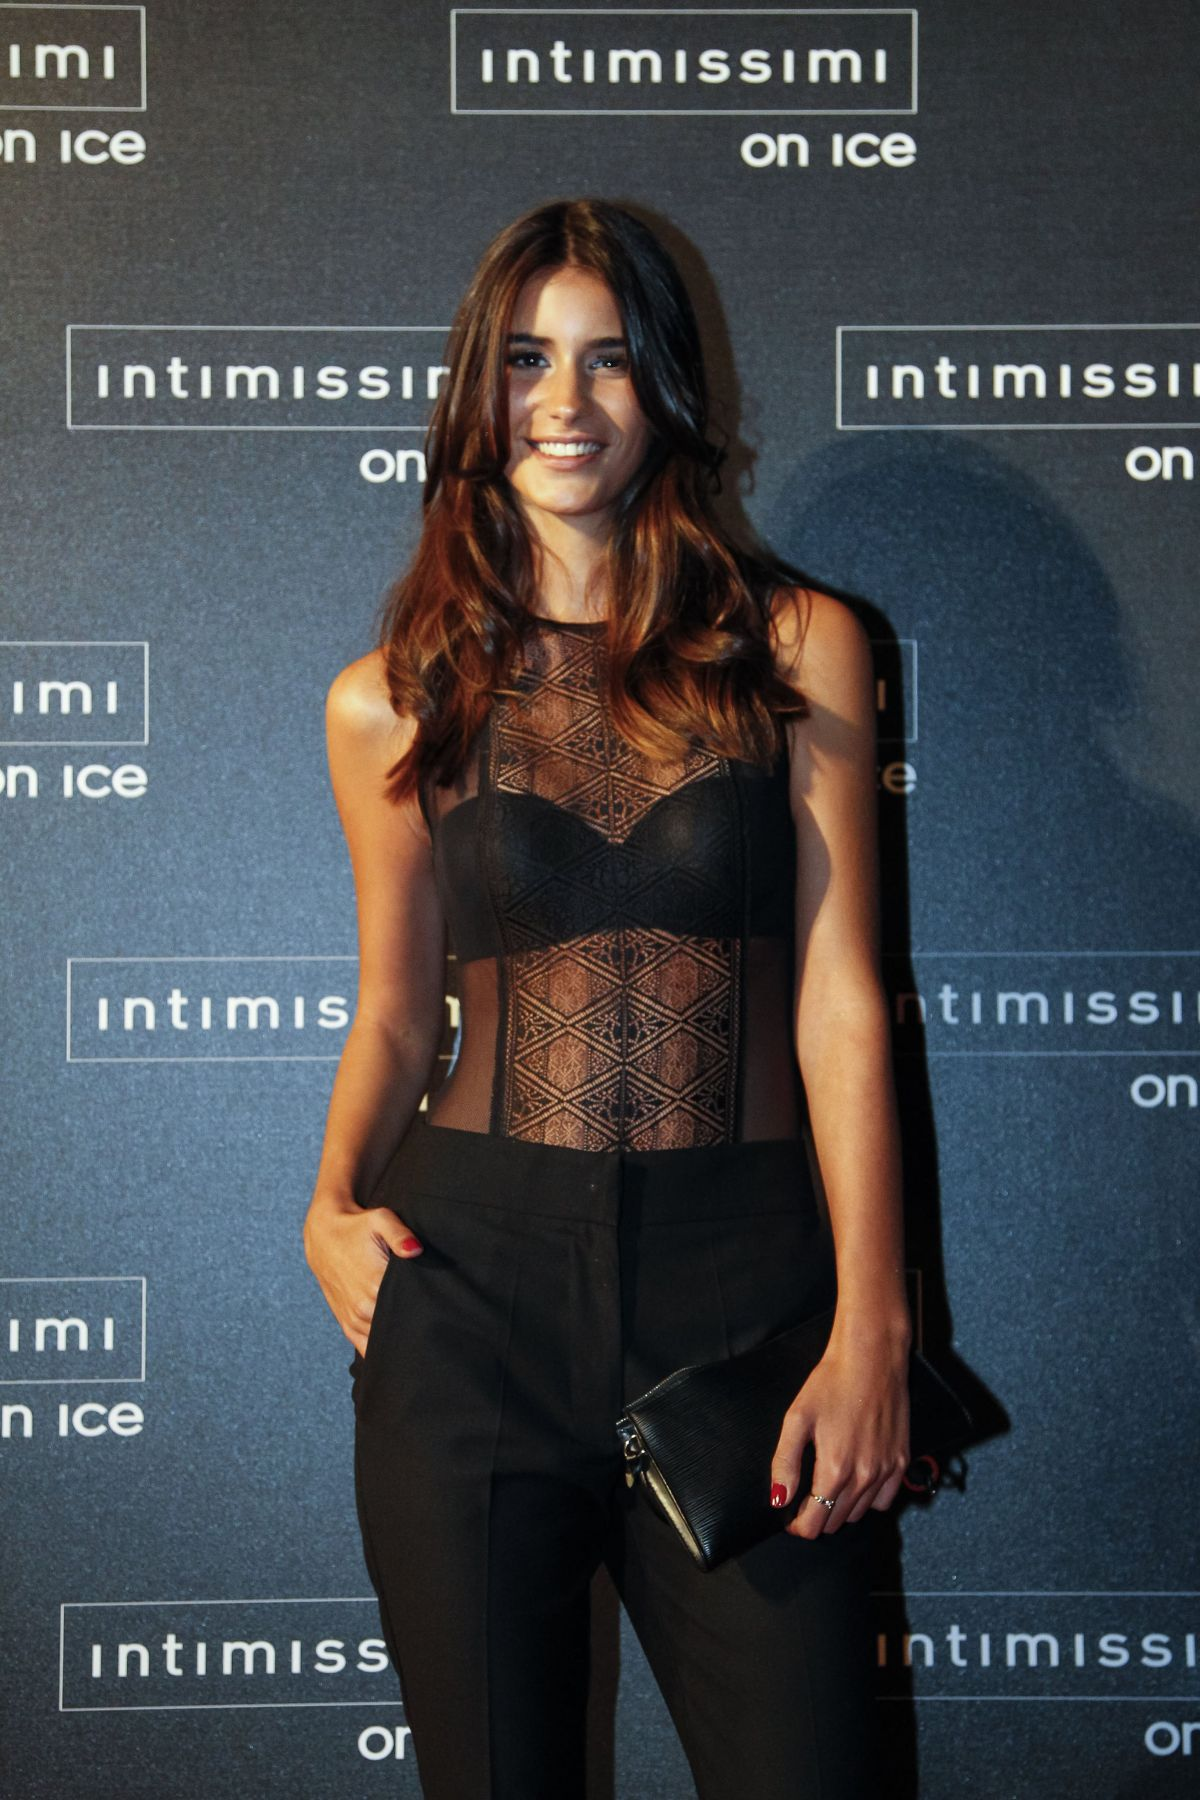 FRANCISCA PEREZ at Intimissimi on Ice 2015 Gala in Verona 10/09/2015